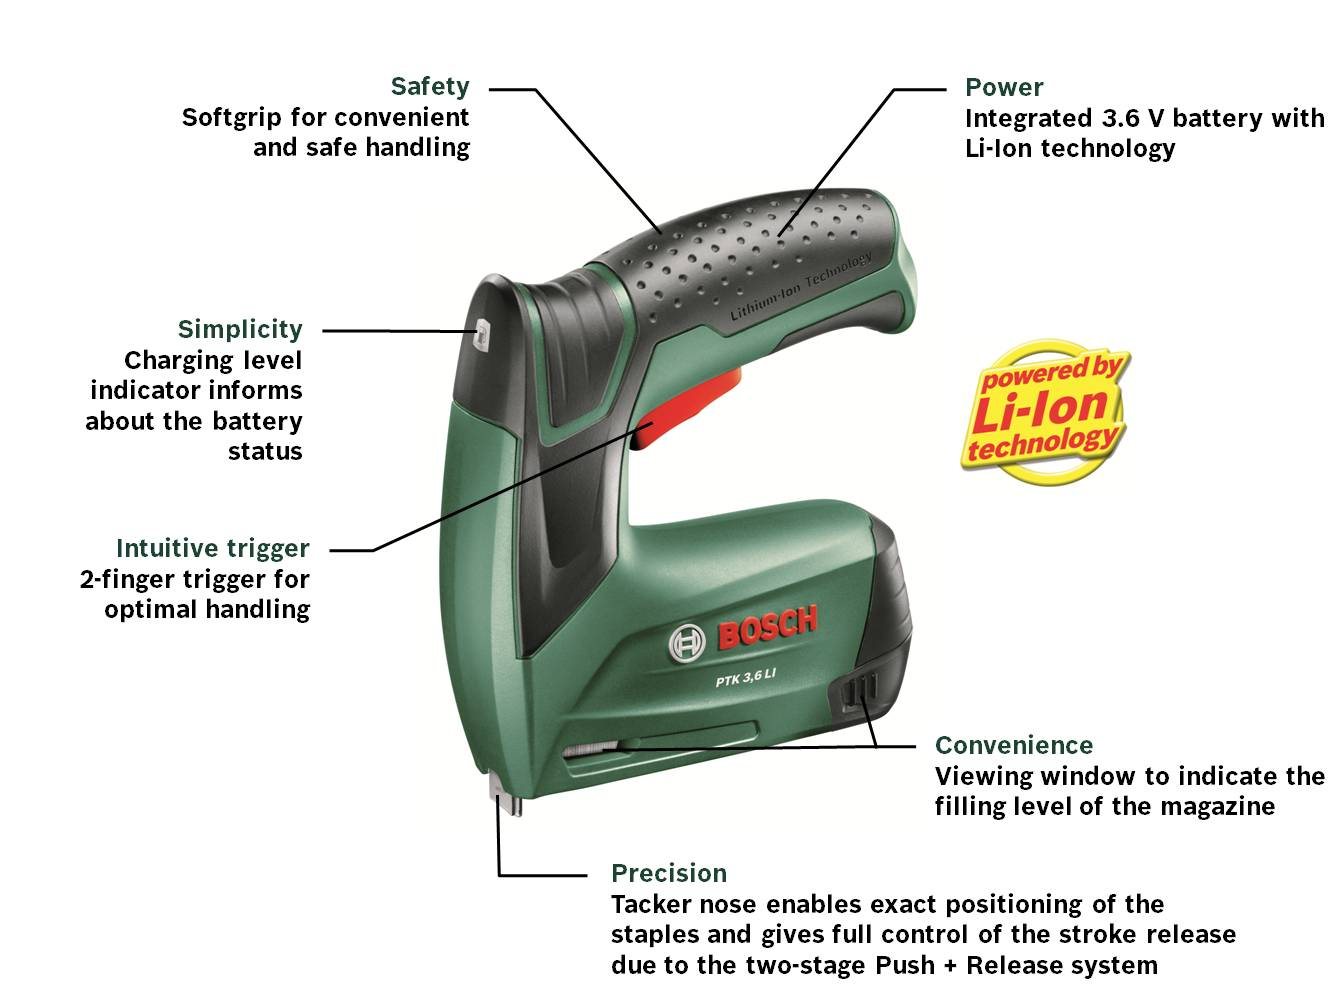 bosch ptk 3 6 li cordless tacker with integrated 3 6 v. Black Bedroom Furniture Sets. Home Design Ideas